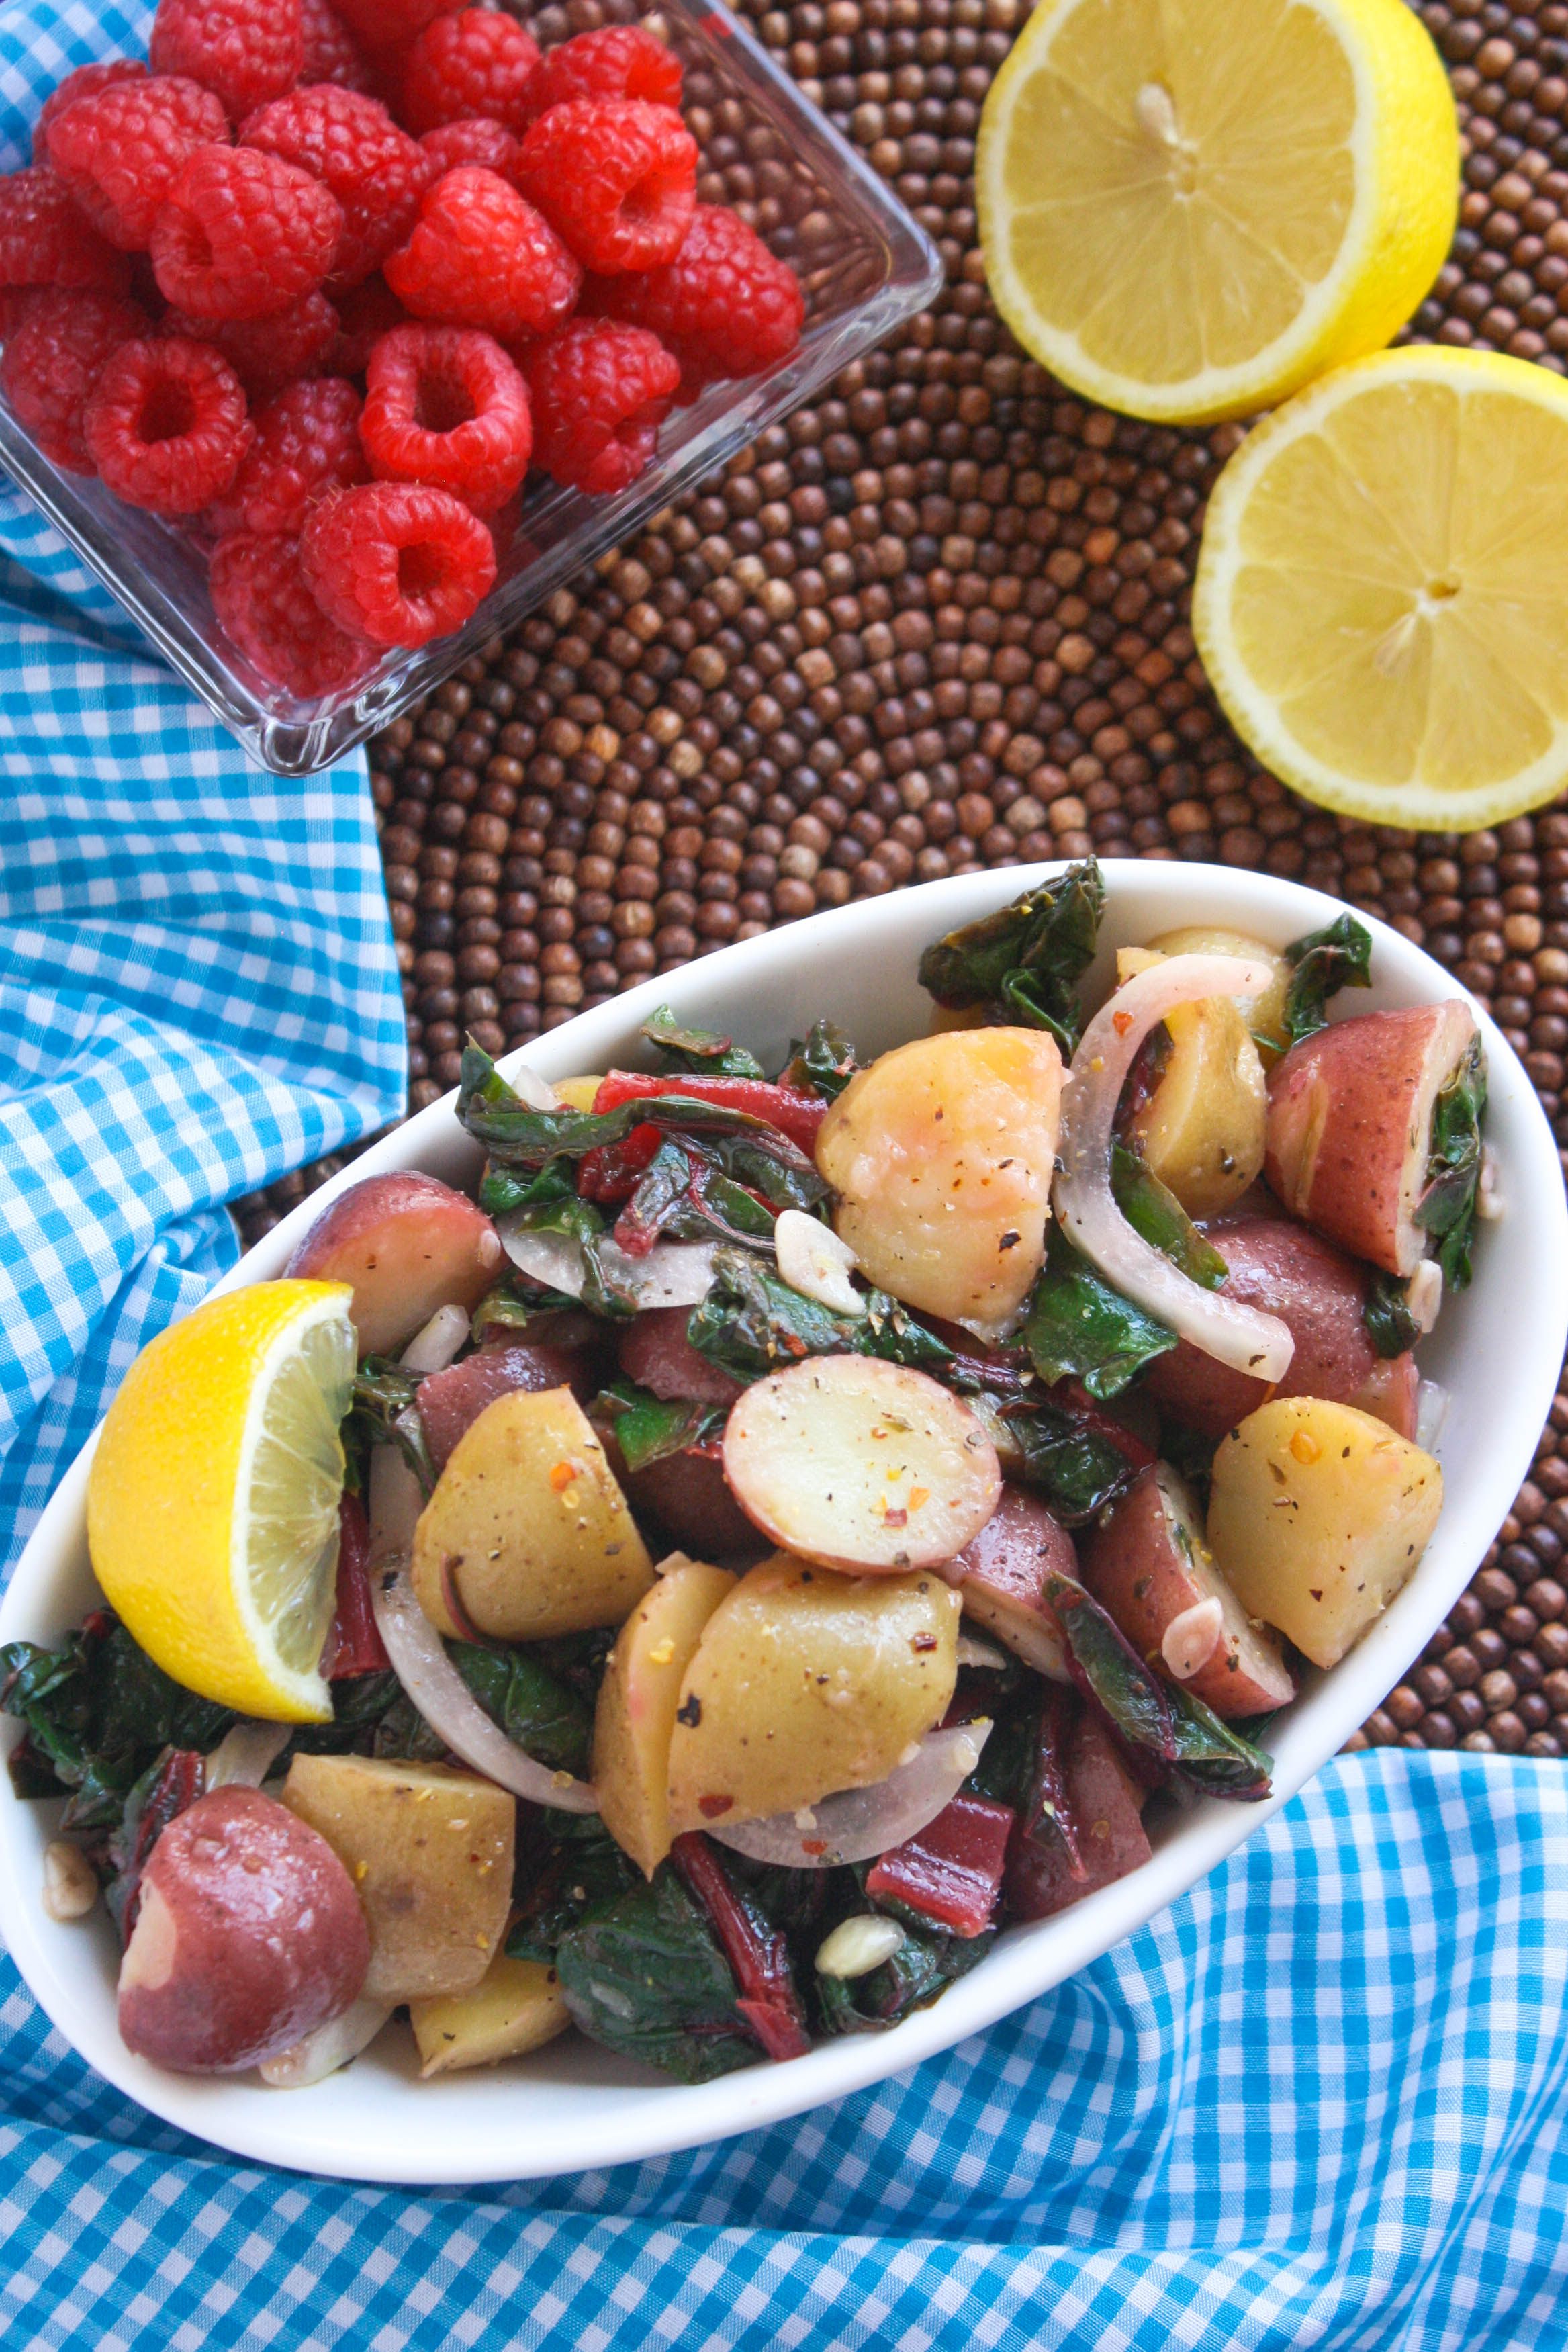 Italian Potato Salad with Swiss Chard is a flavorful side dish you'll want to make all summer. It's healthy take and fresh taste is amazing!